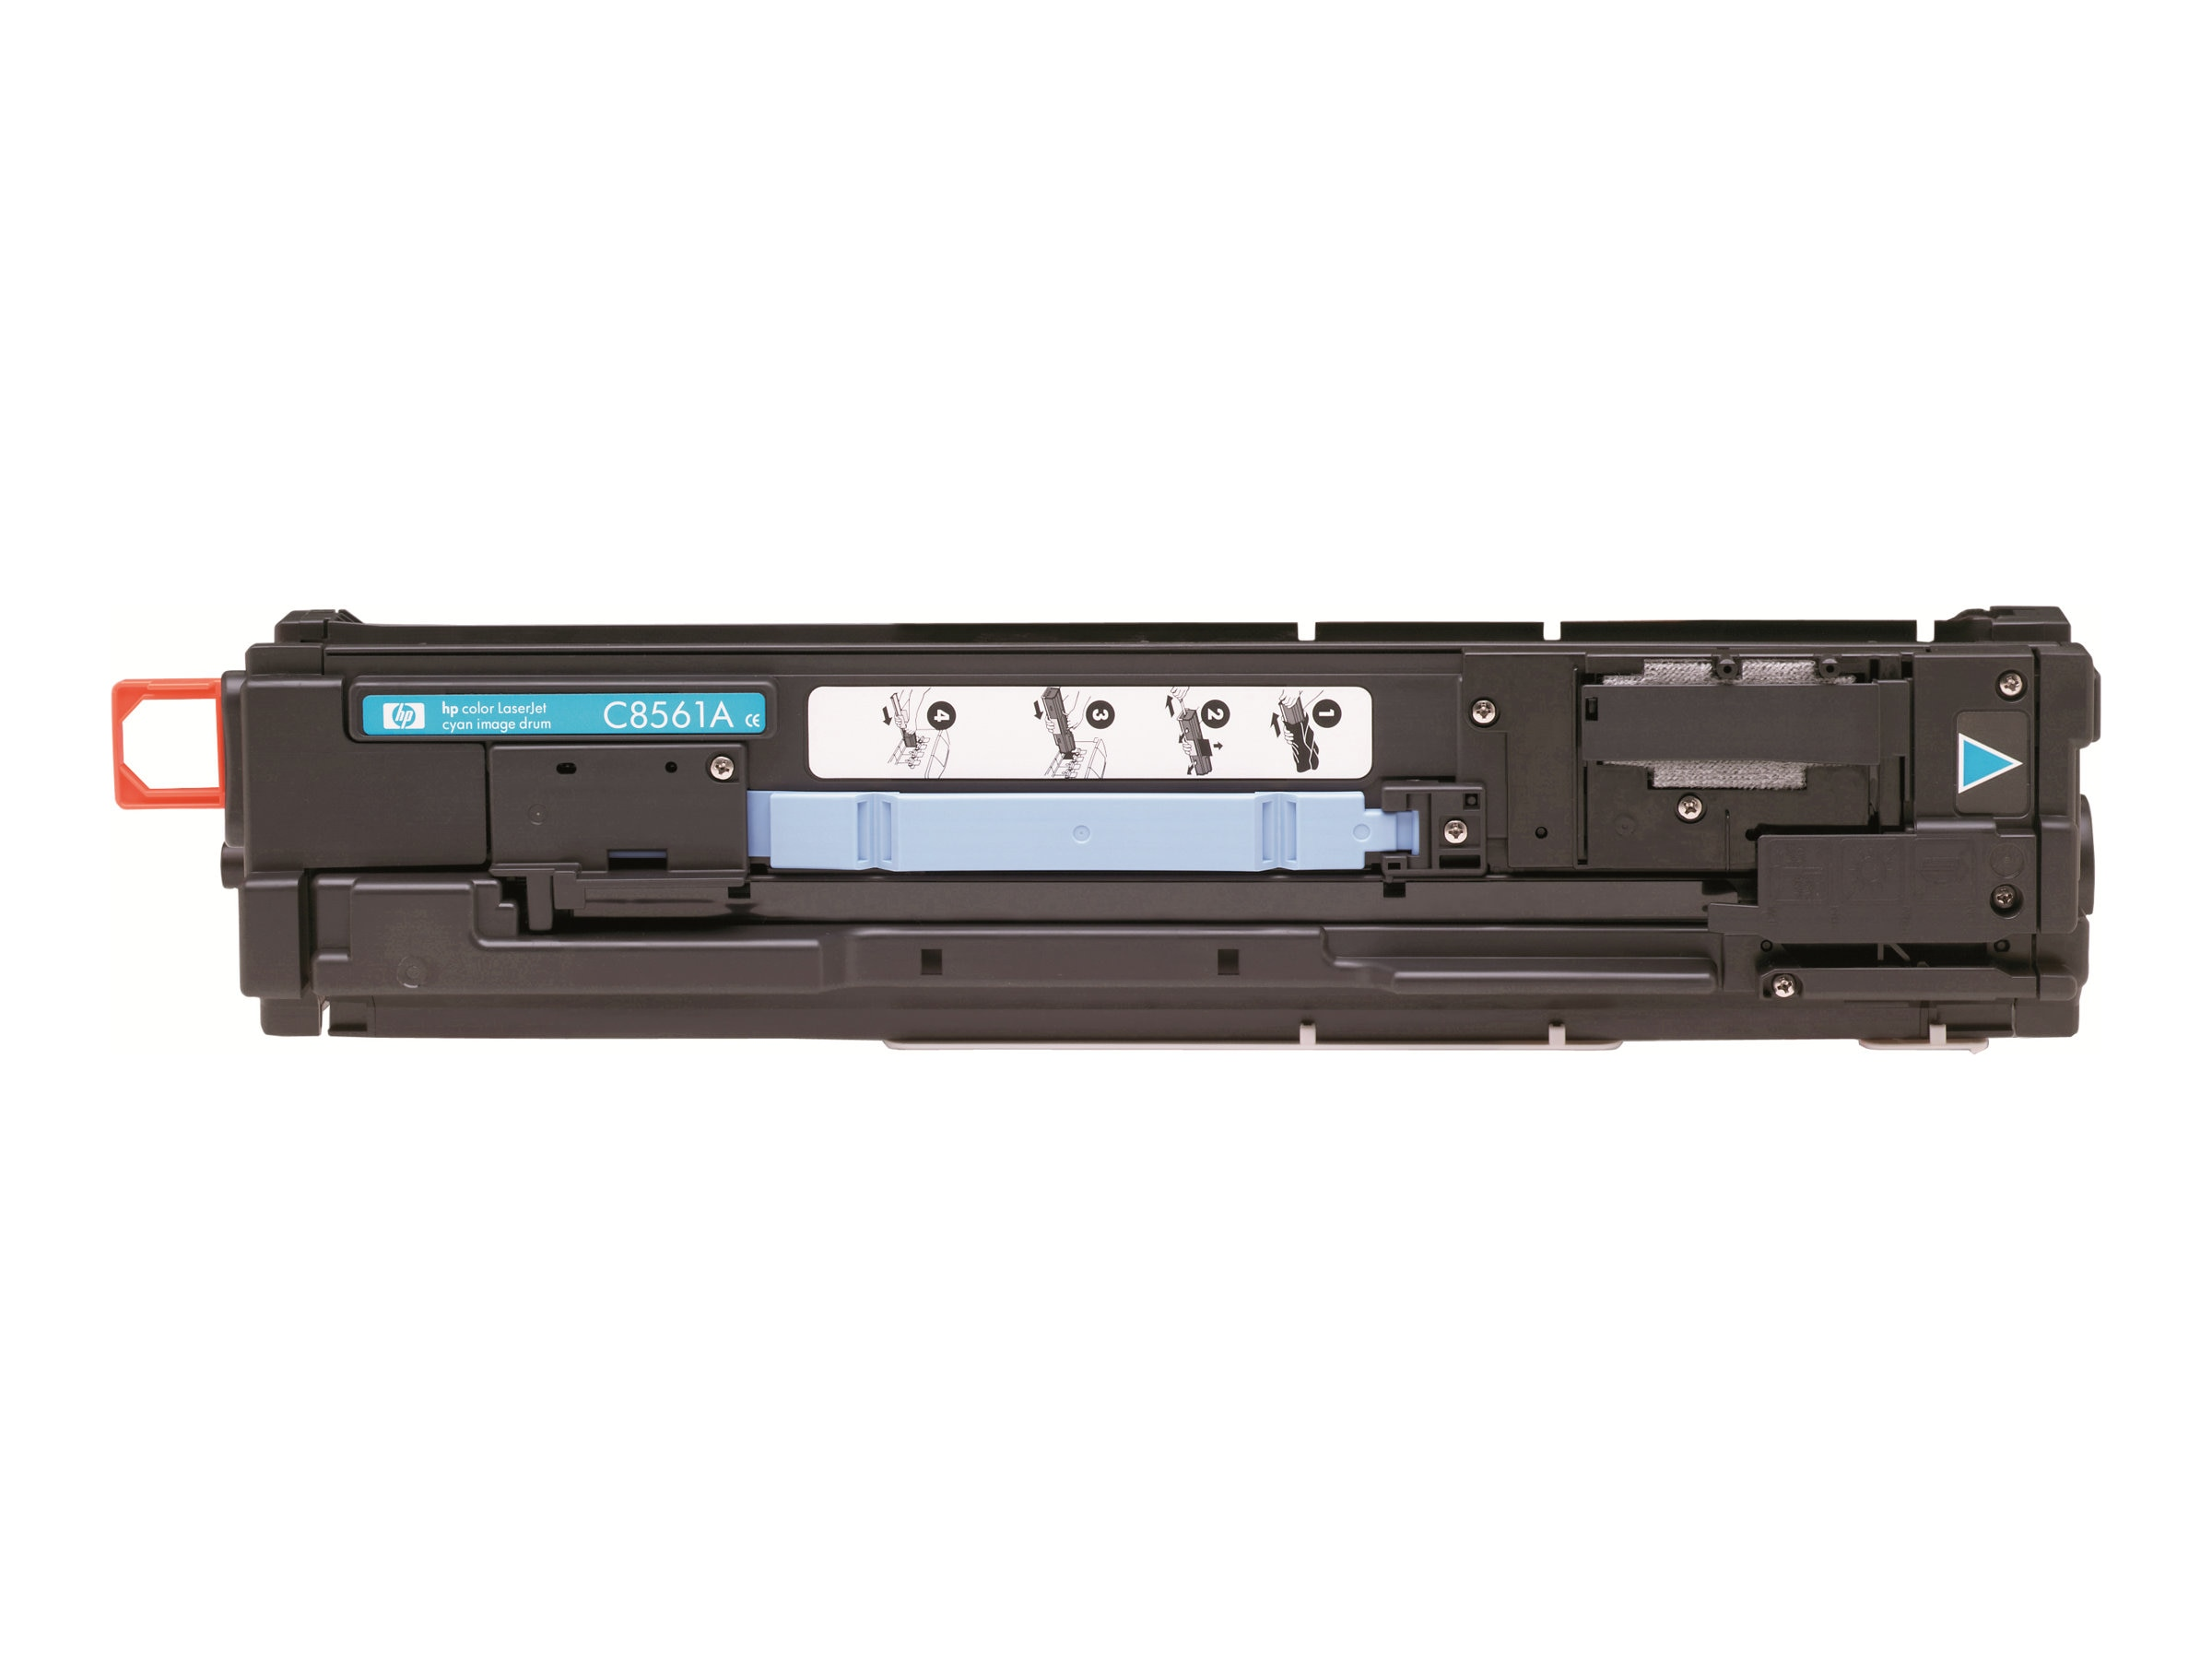 HP 822A Cyan Image Drum for HP Color LaserJet 9500 Printer Series, C8561A, 471953, Toner and Imaging Components